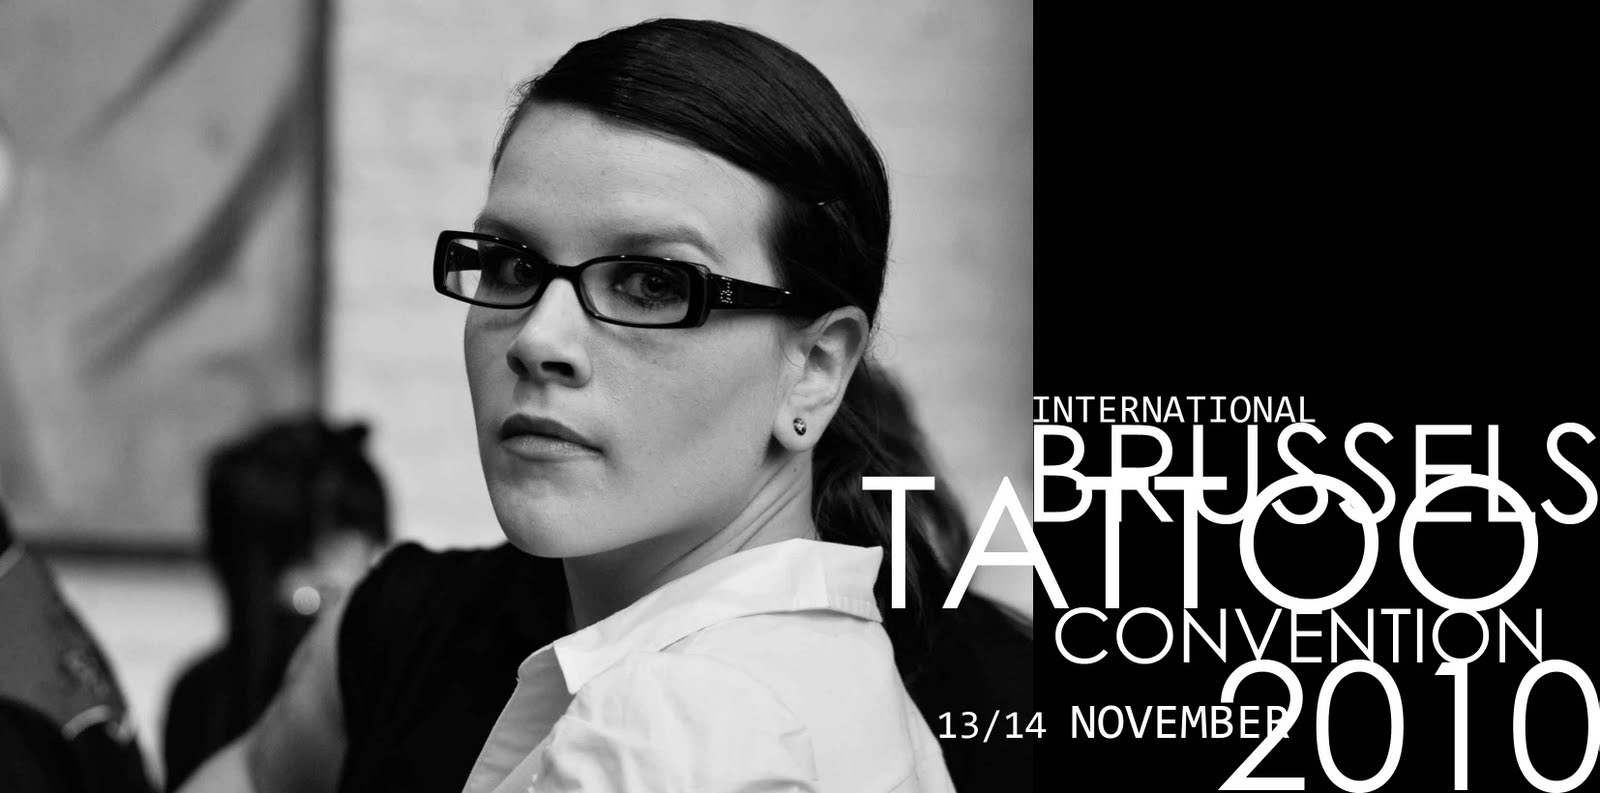 Convention Tatouage Bruxelles - International Brussels Tattoo Convention – 8 > 10 novembre